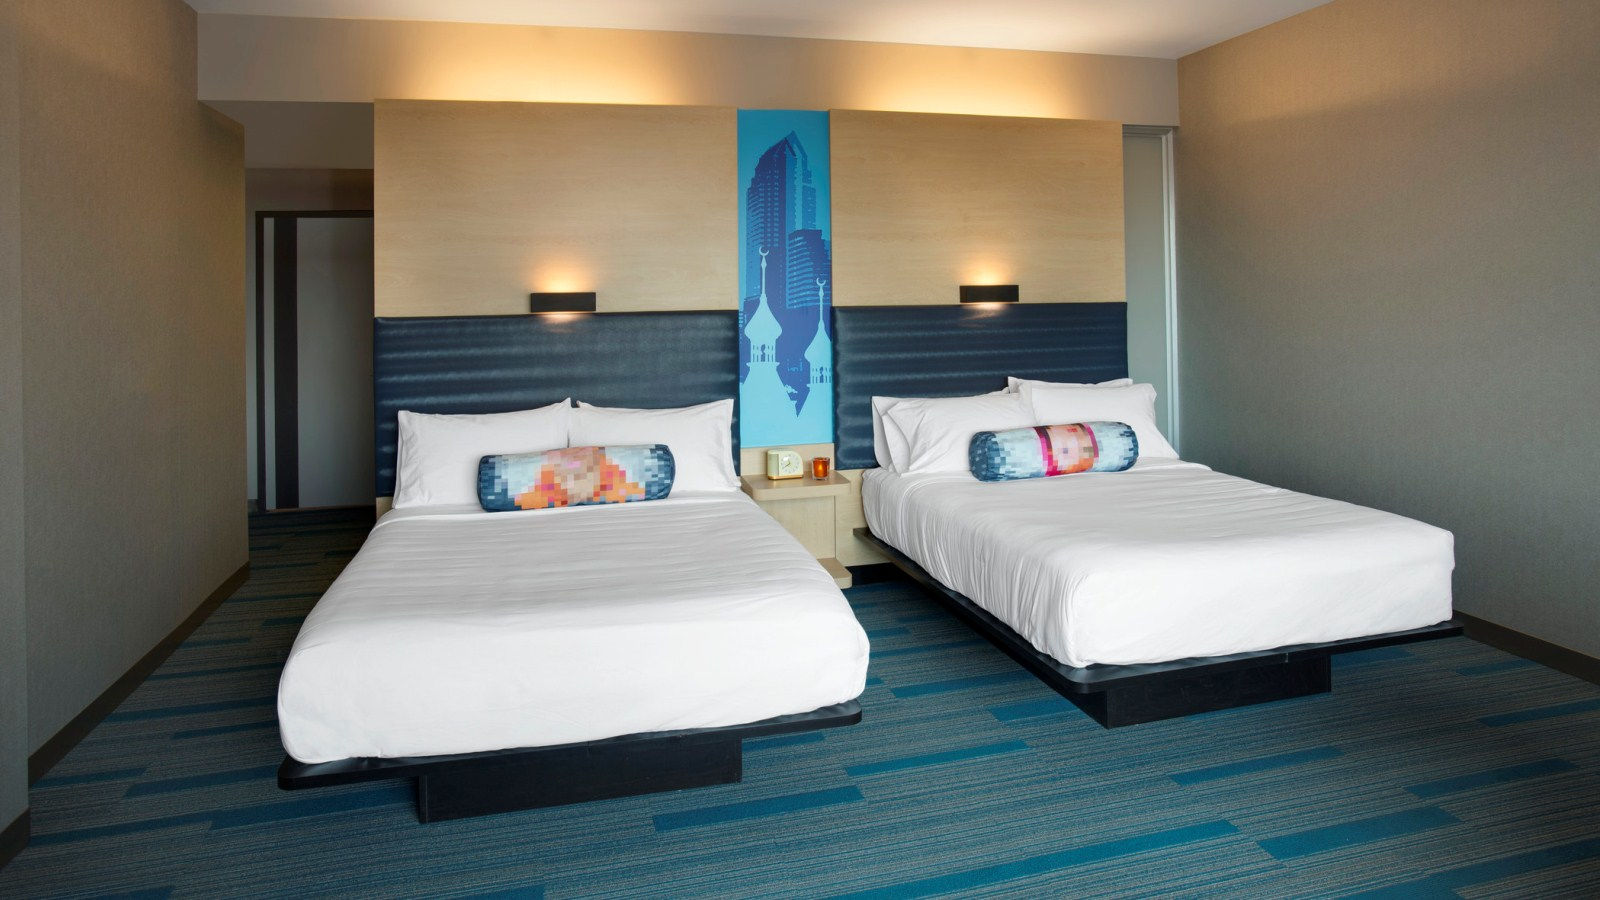 Tampa Accommodations - Aloft Queen Room